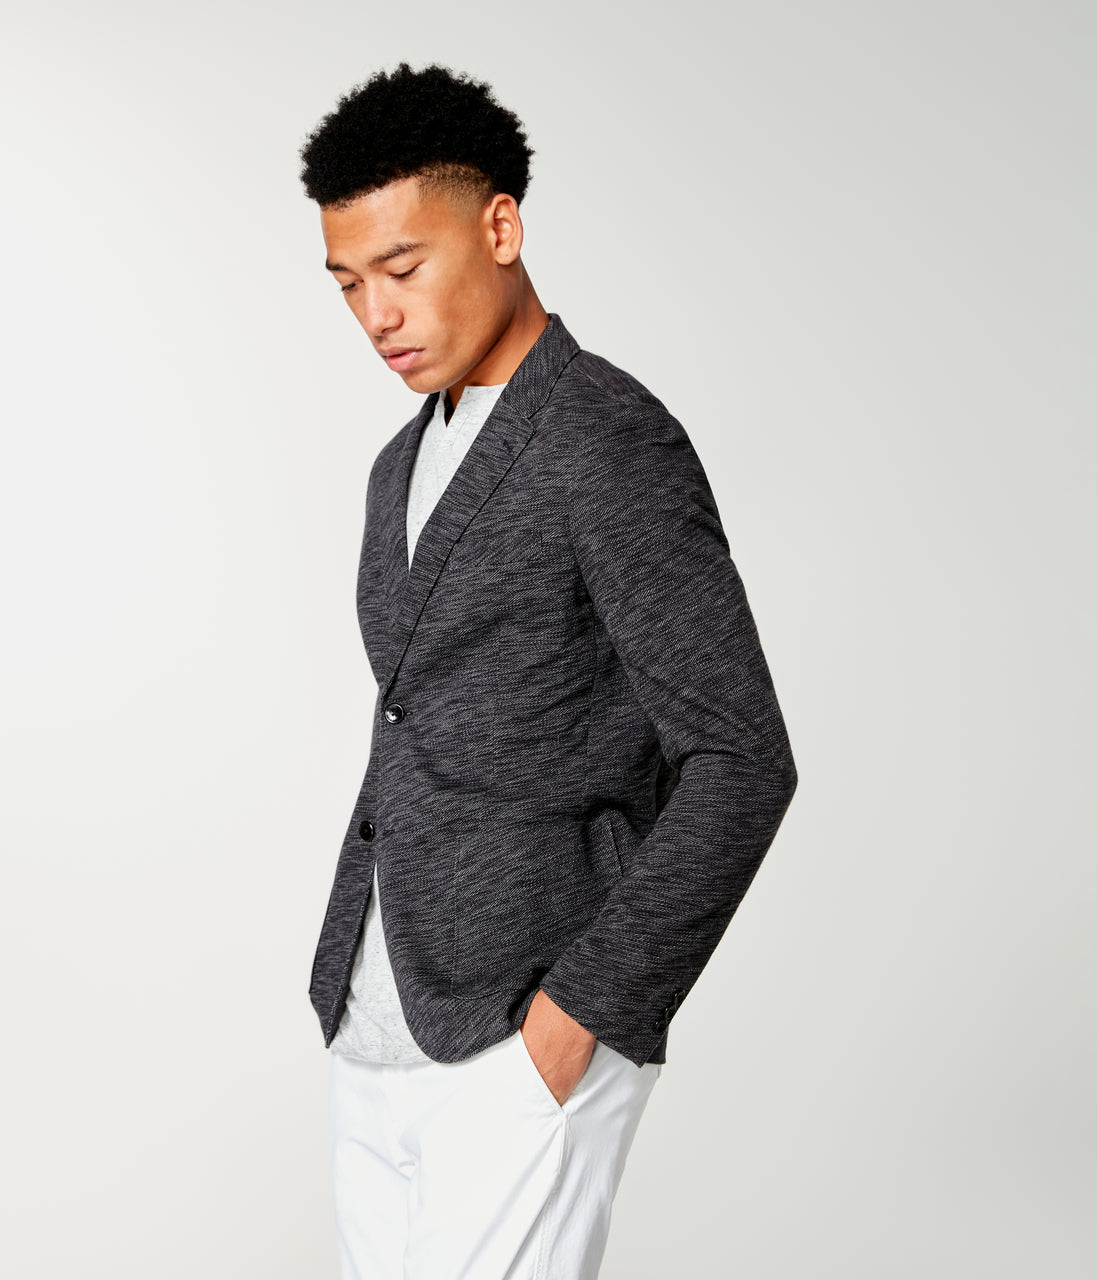 Twill Slub French Terry Soft Blazer - Black / Grey Heather - Good Man Brand - Twill Slub French Terry Soft Blazer - Black